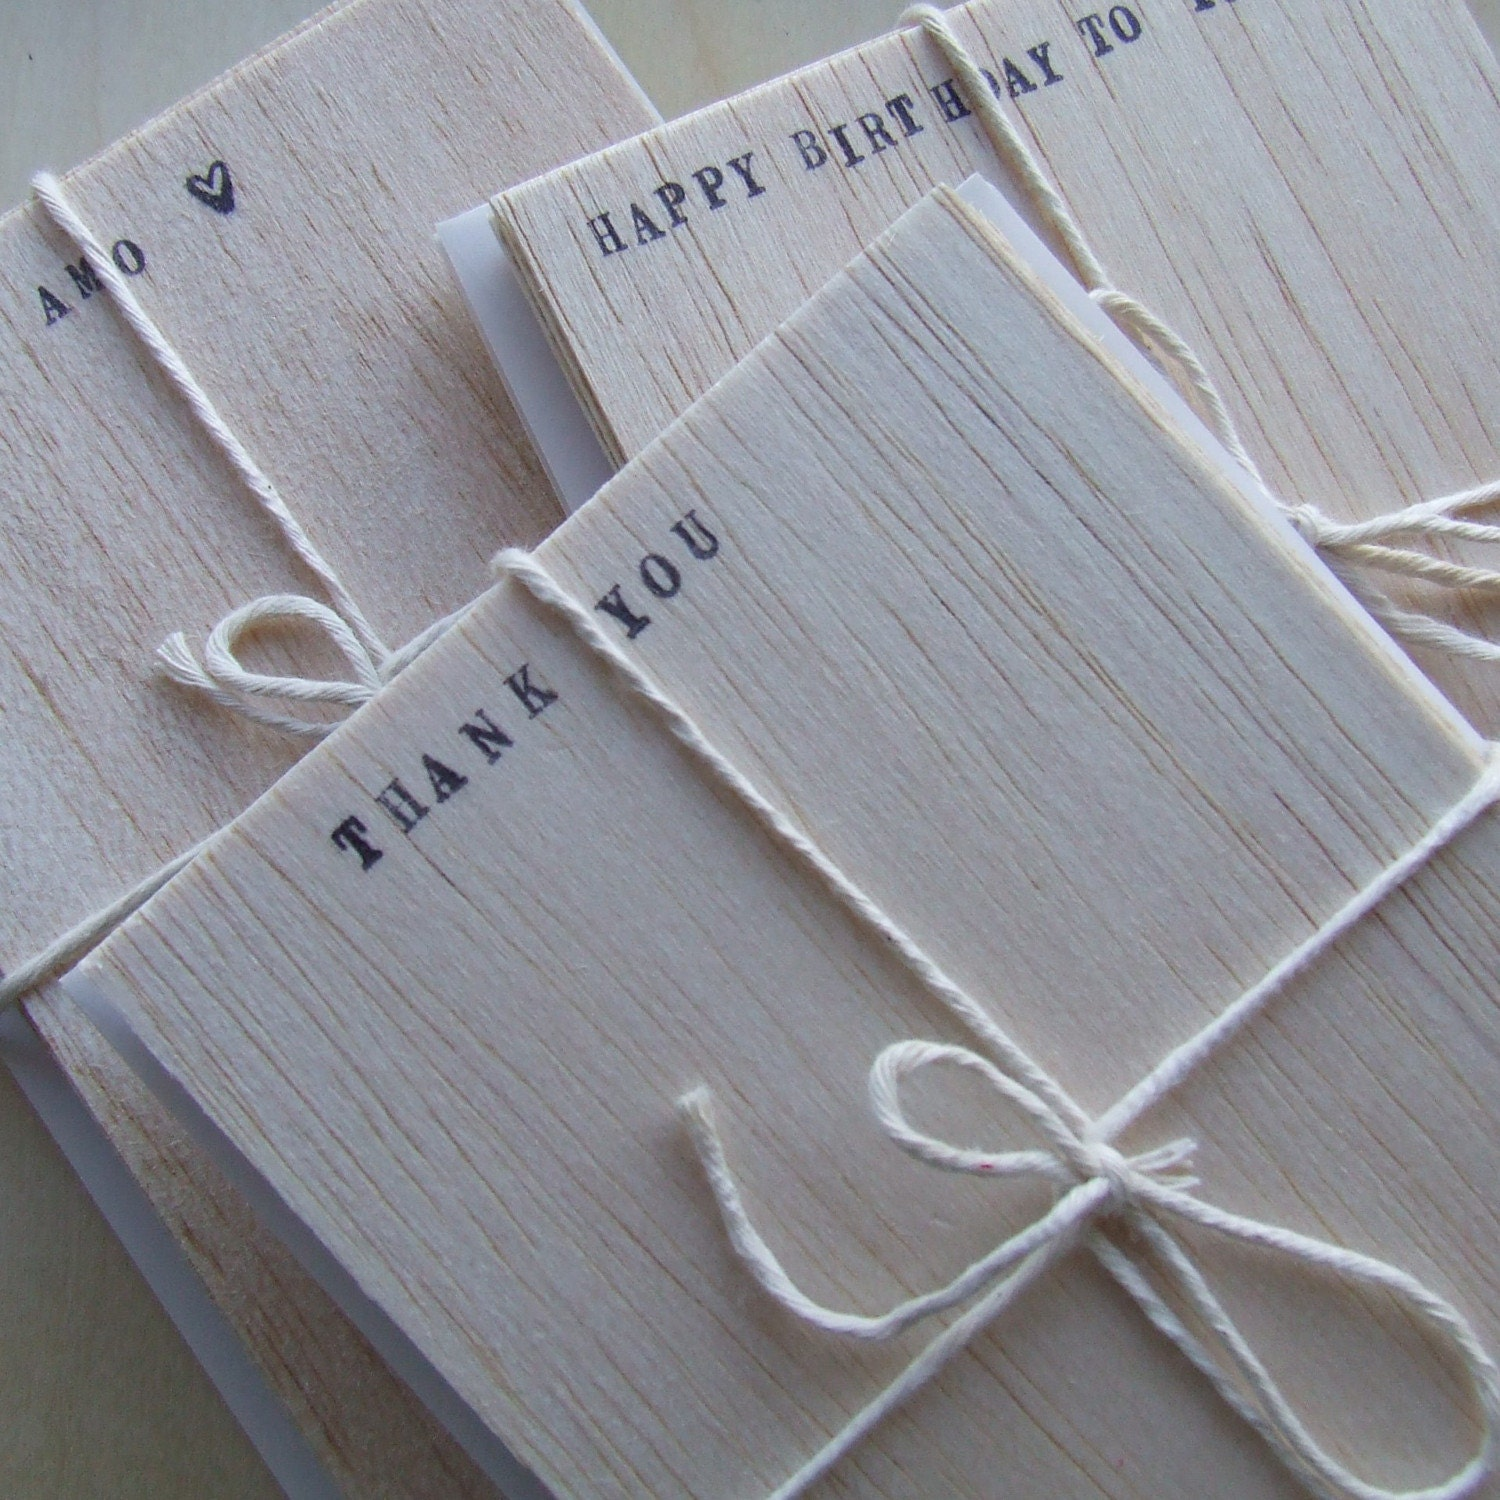 I LOVE YOU balsa wood stationery set